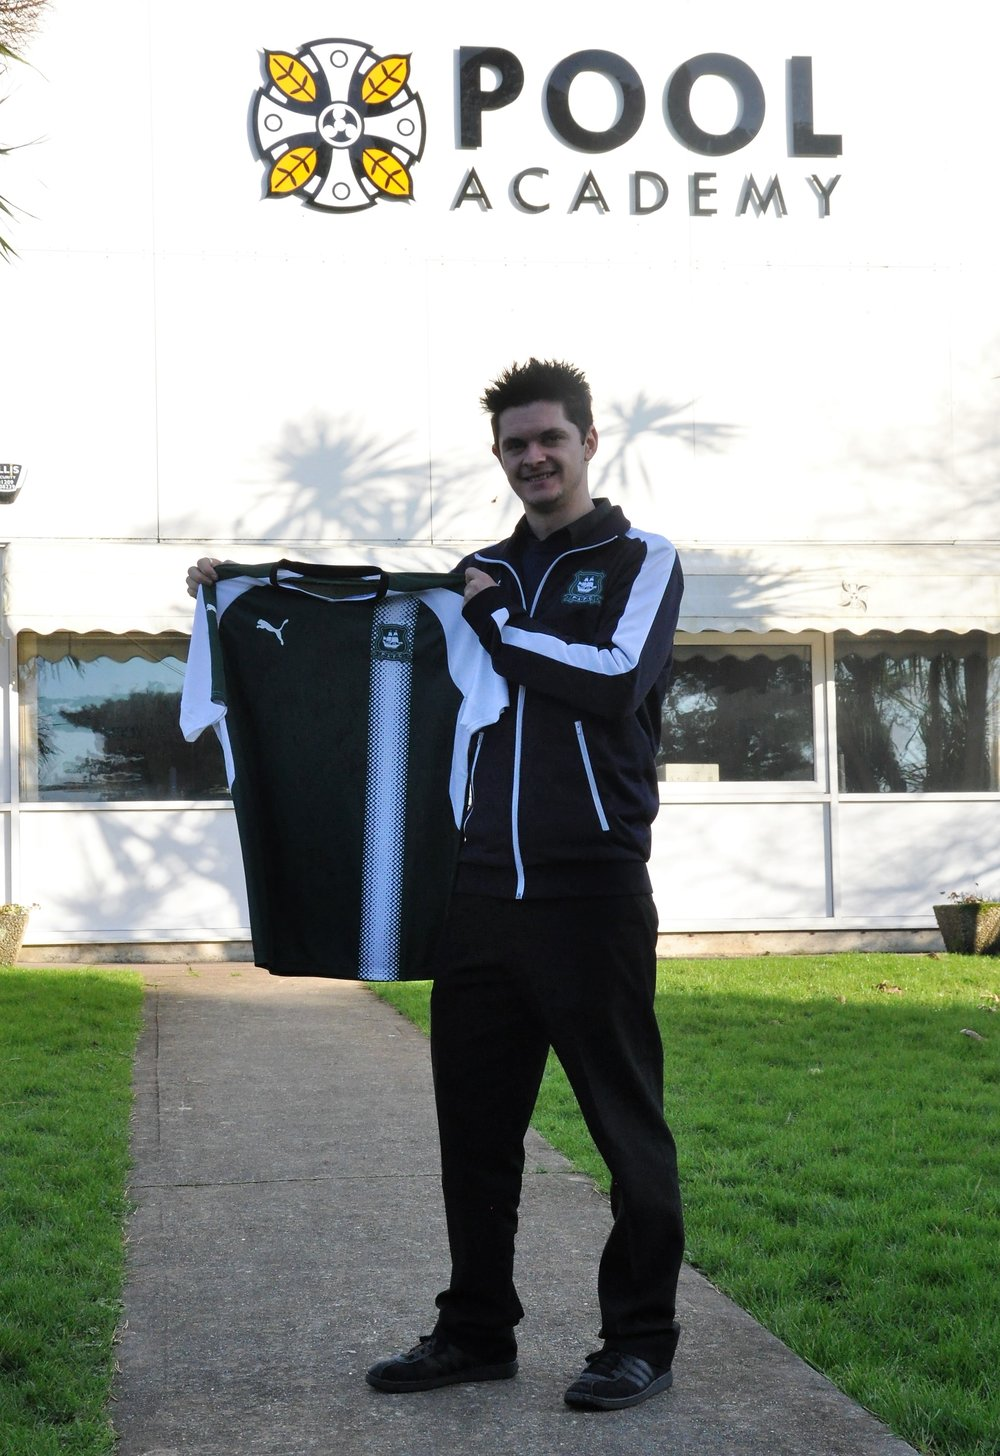 Photograph Caption: Mark Fuller with the shirt to be displayed at Pool Academy.